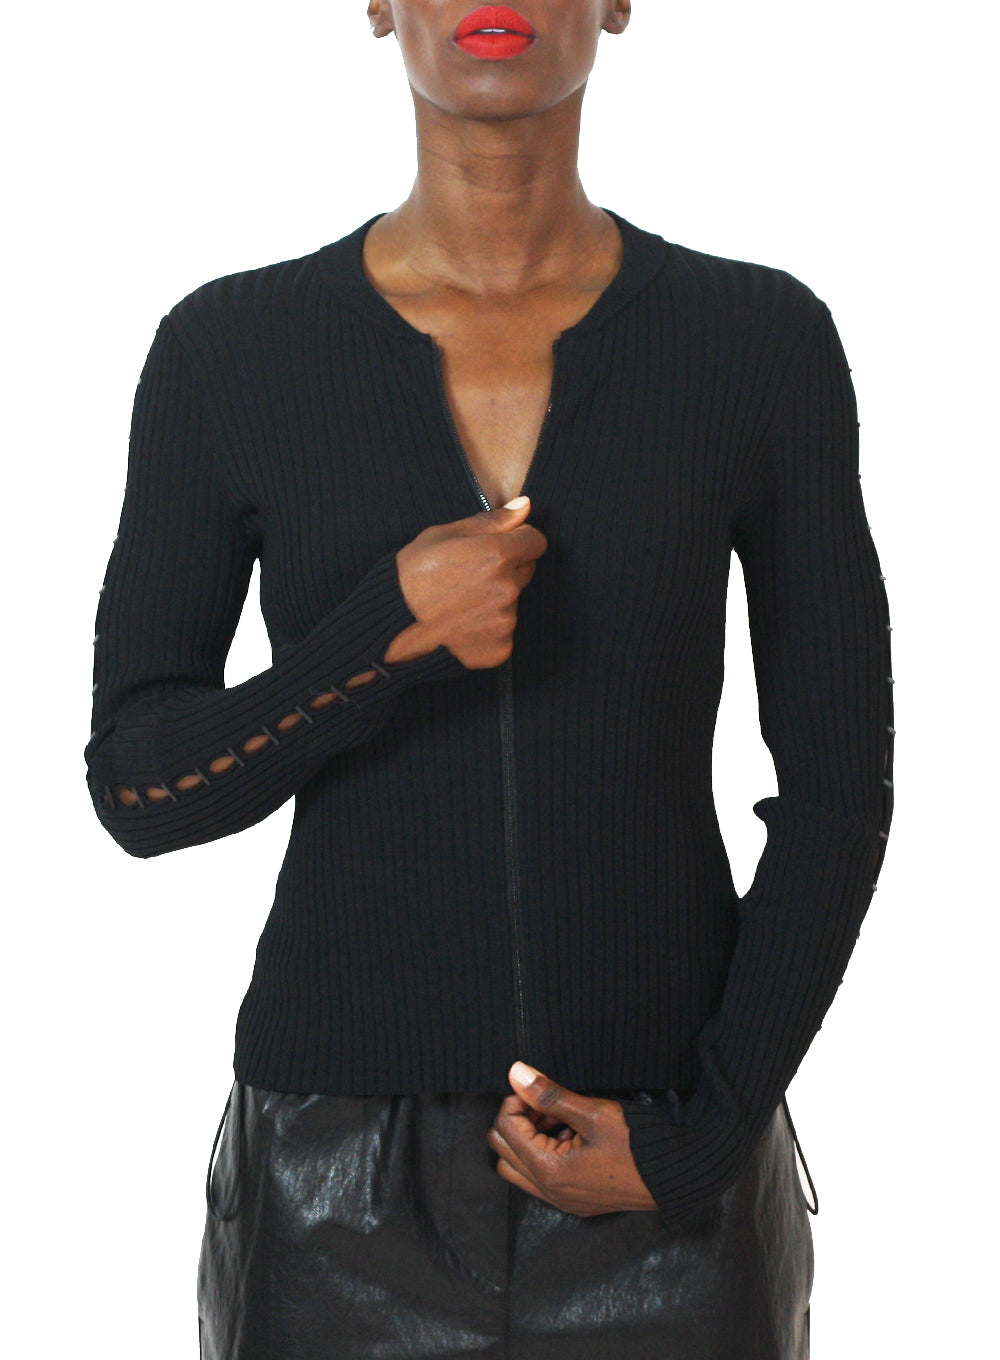 JONATHAN SIMKHAI | Staple Knit Zip-Up Jacket in Black